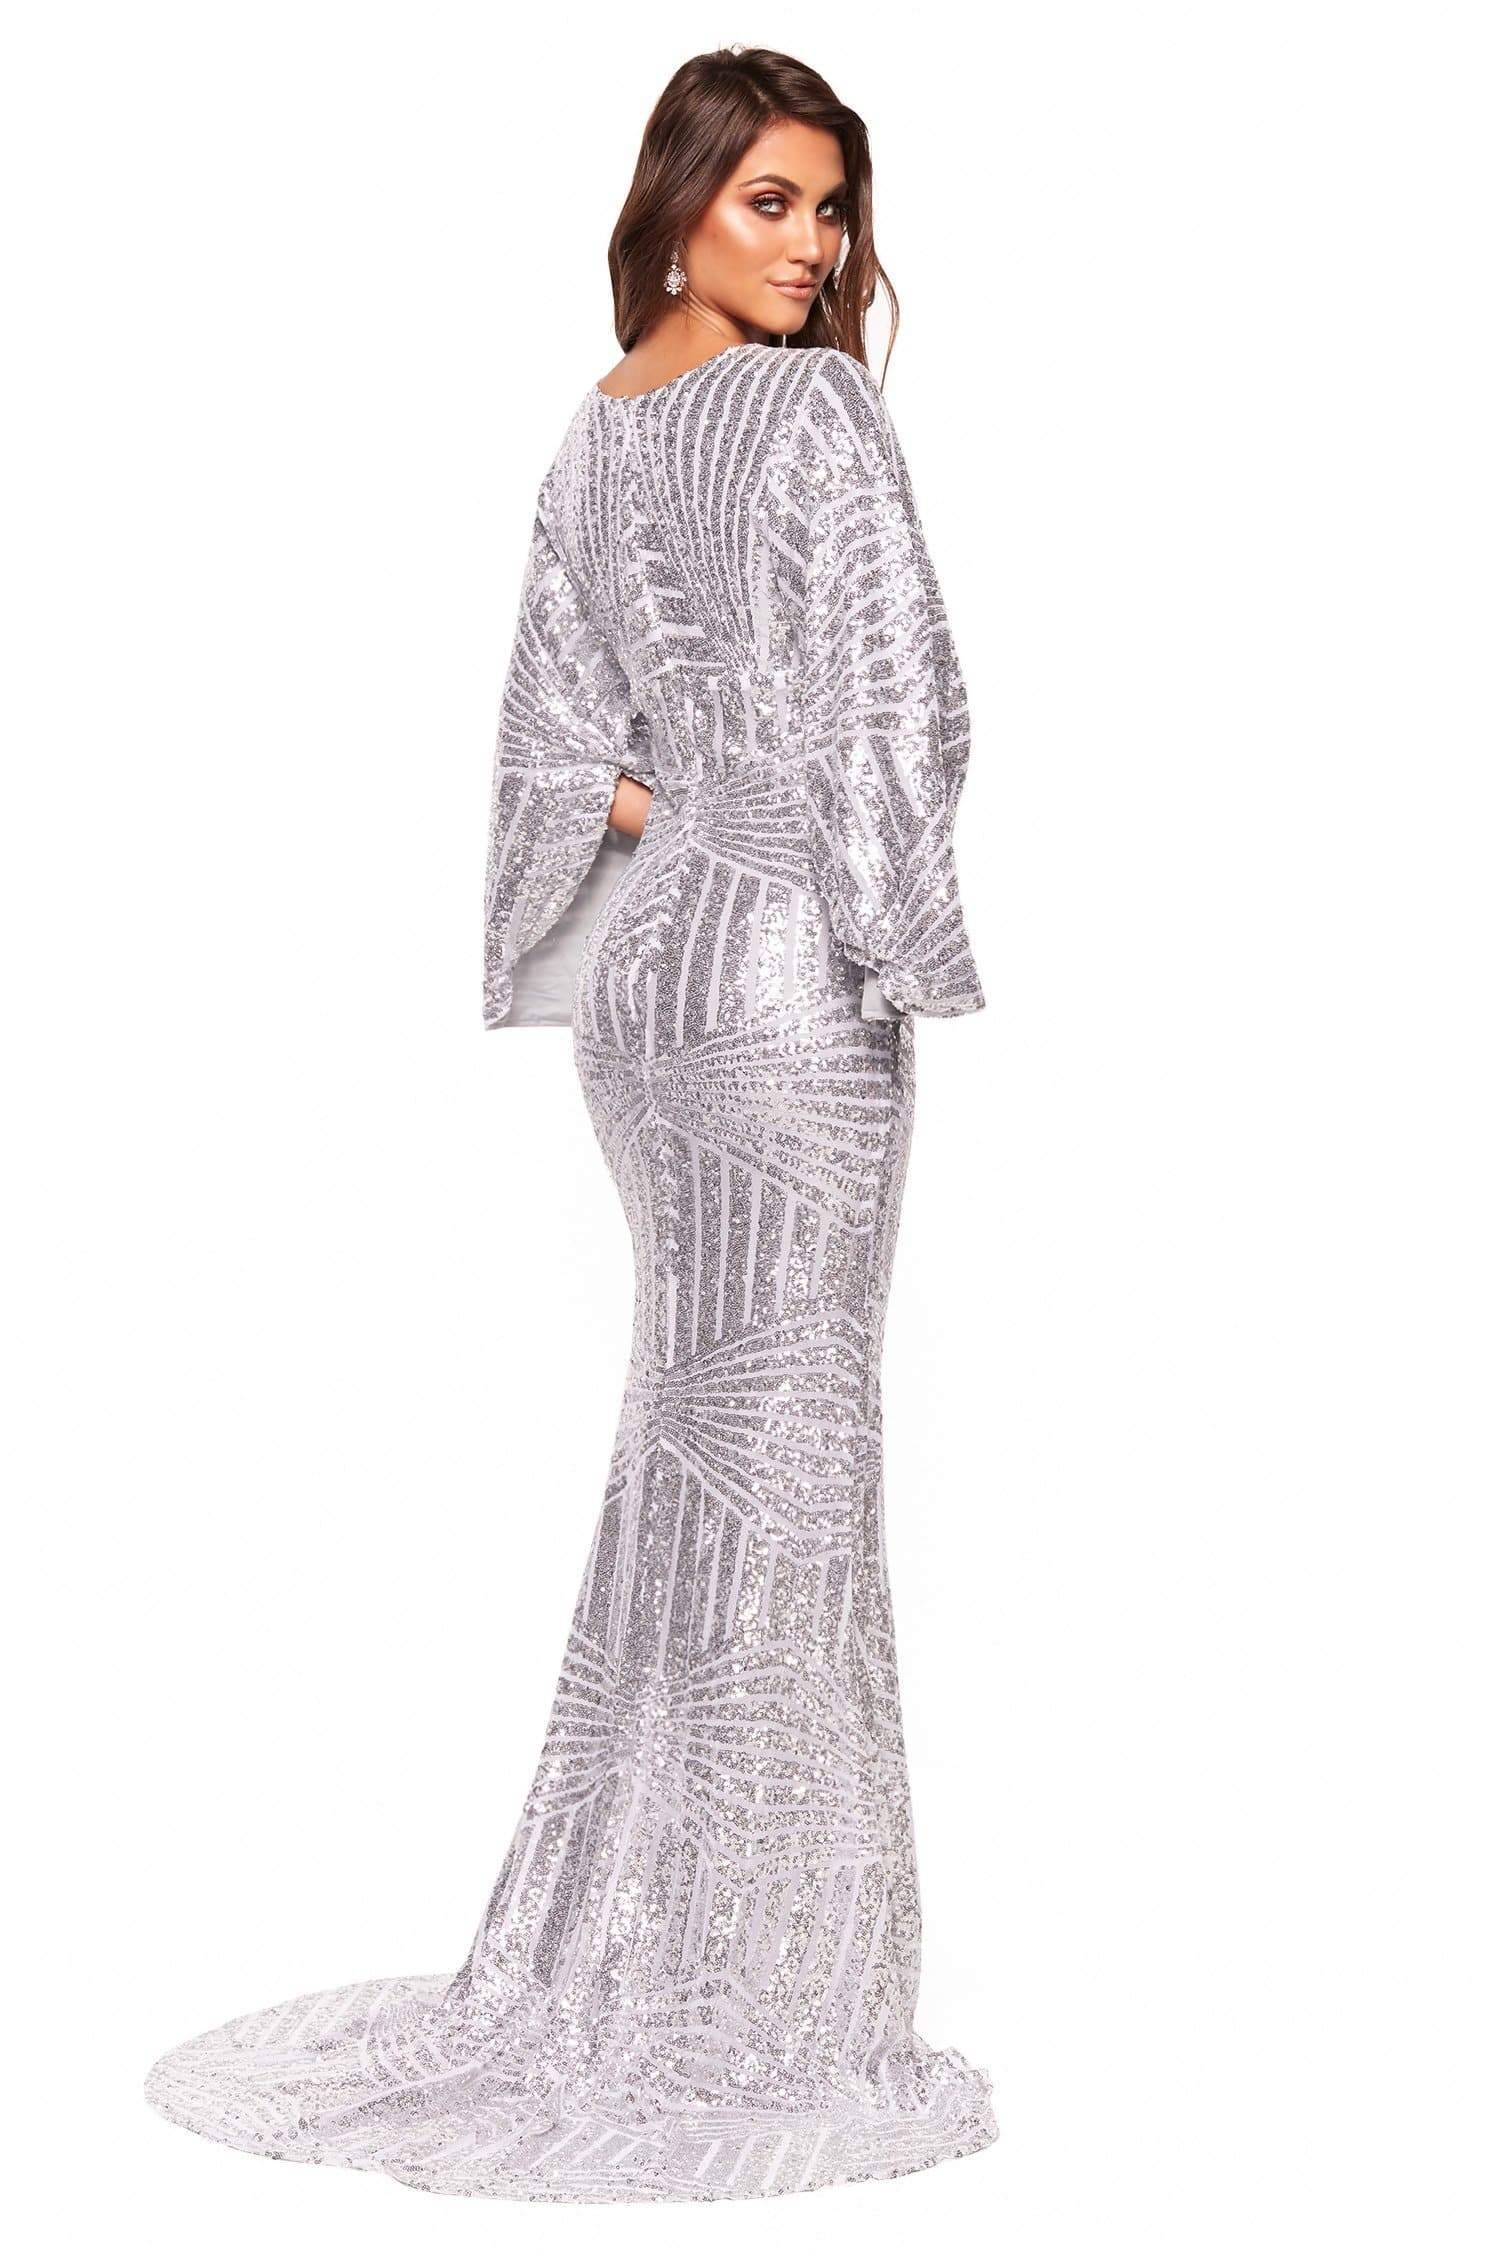 A&N Luxe Cass - Silver Kimono Sequins Gown w Plunge Neck & Side Slit